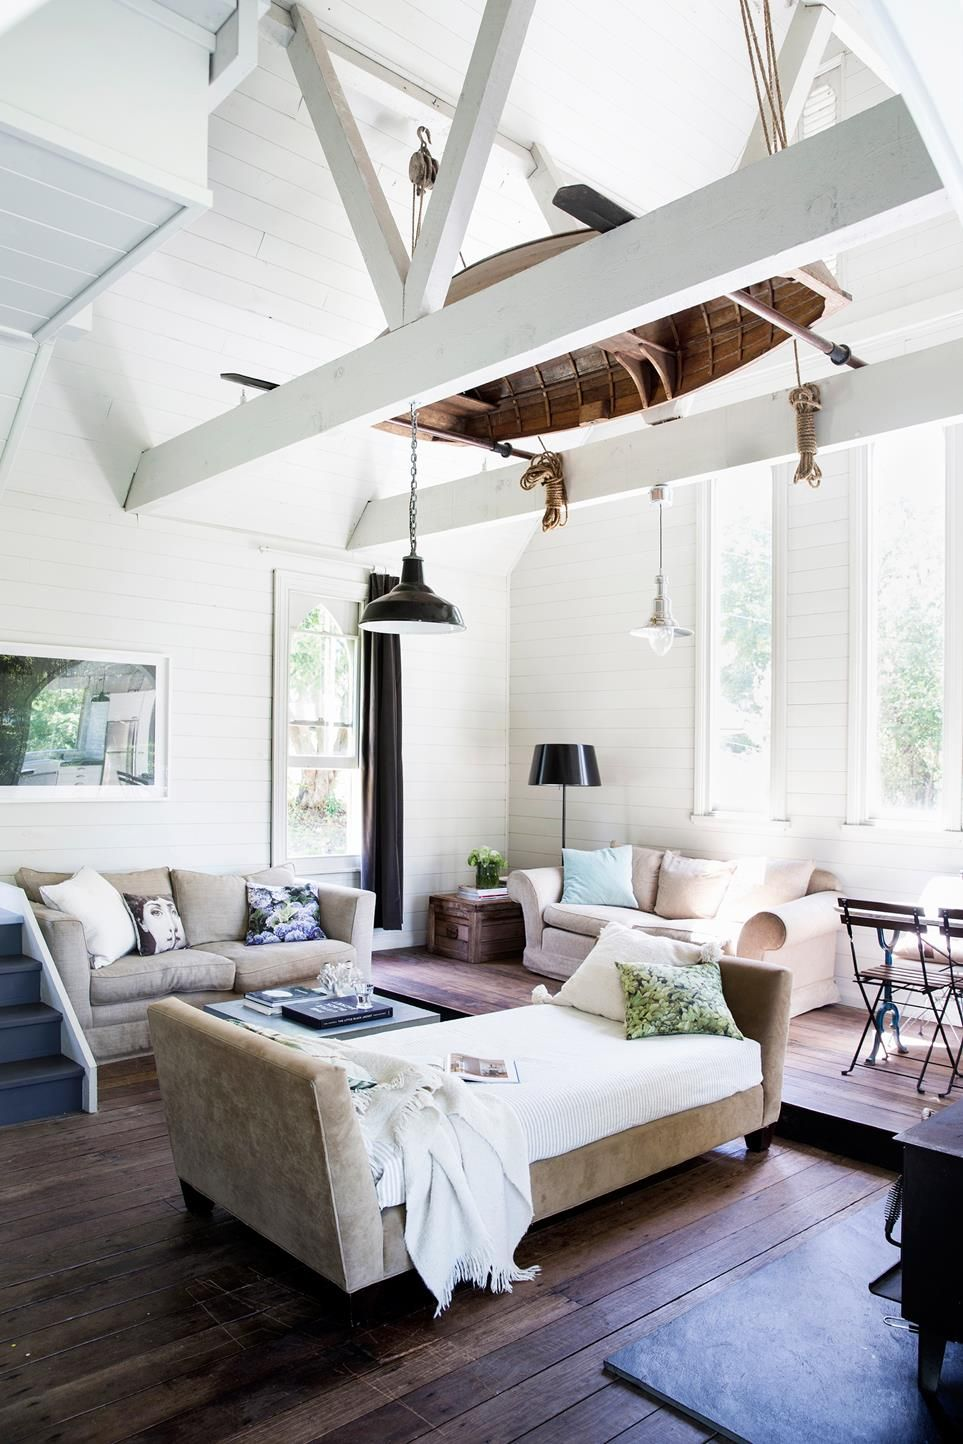 19th Century Drawing Room: A Converted 19th Century Church On The Hawksberry River